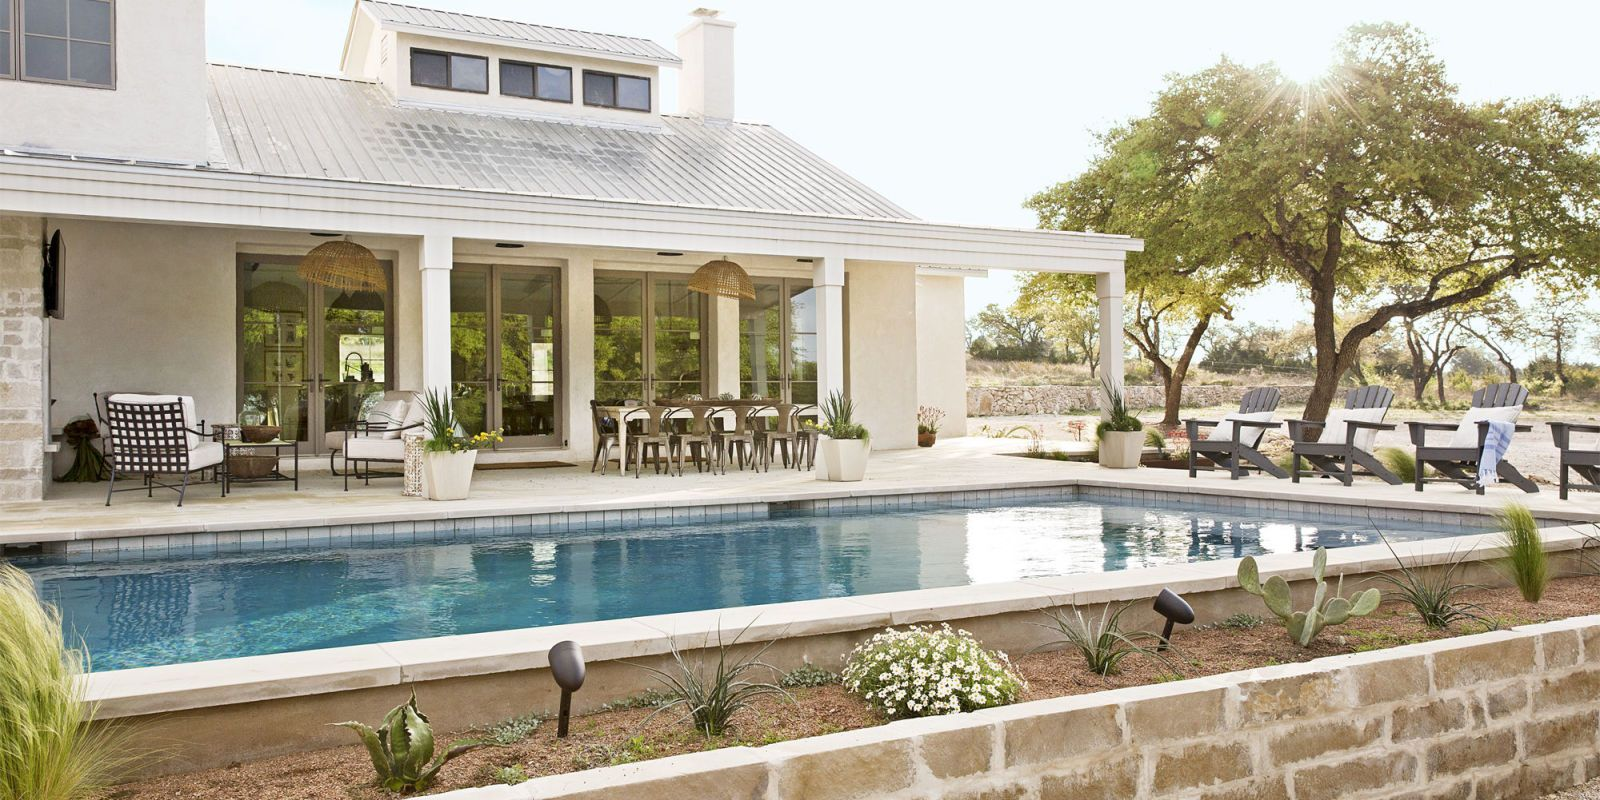 These Dream Worthy Swimming Pool Design Ideas Are The Ultimate In Landscape  Design Eye Candy.